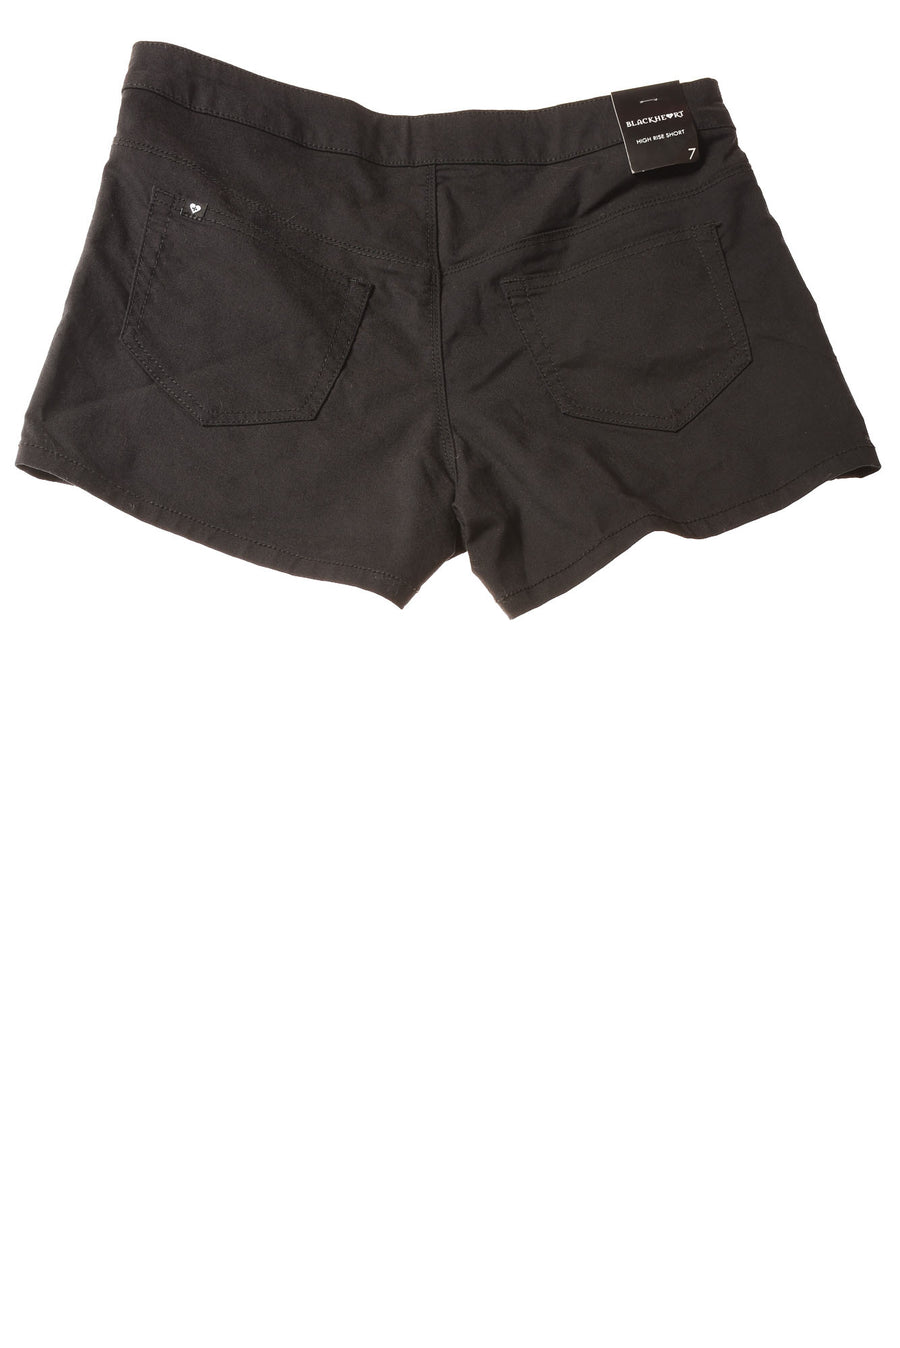 Women's Shorts By Blackheart